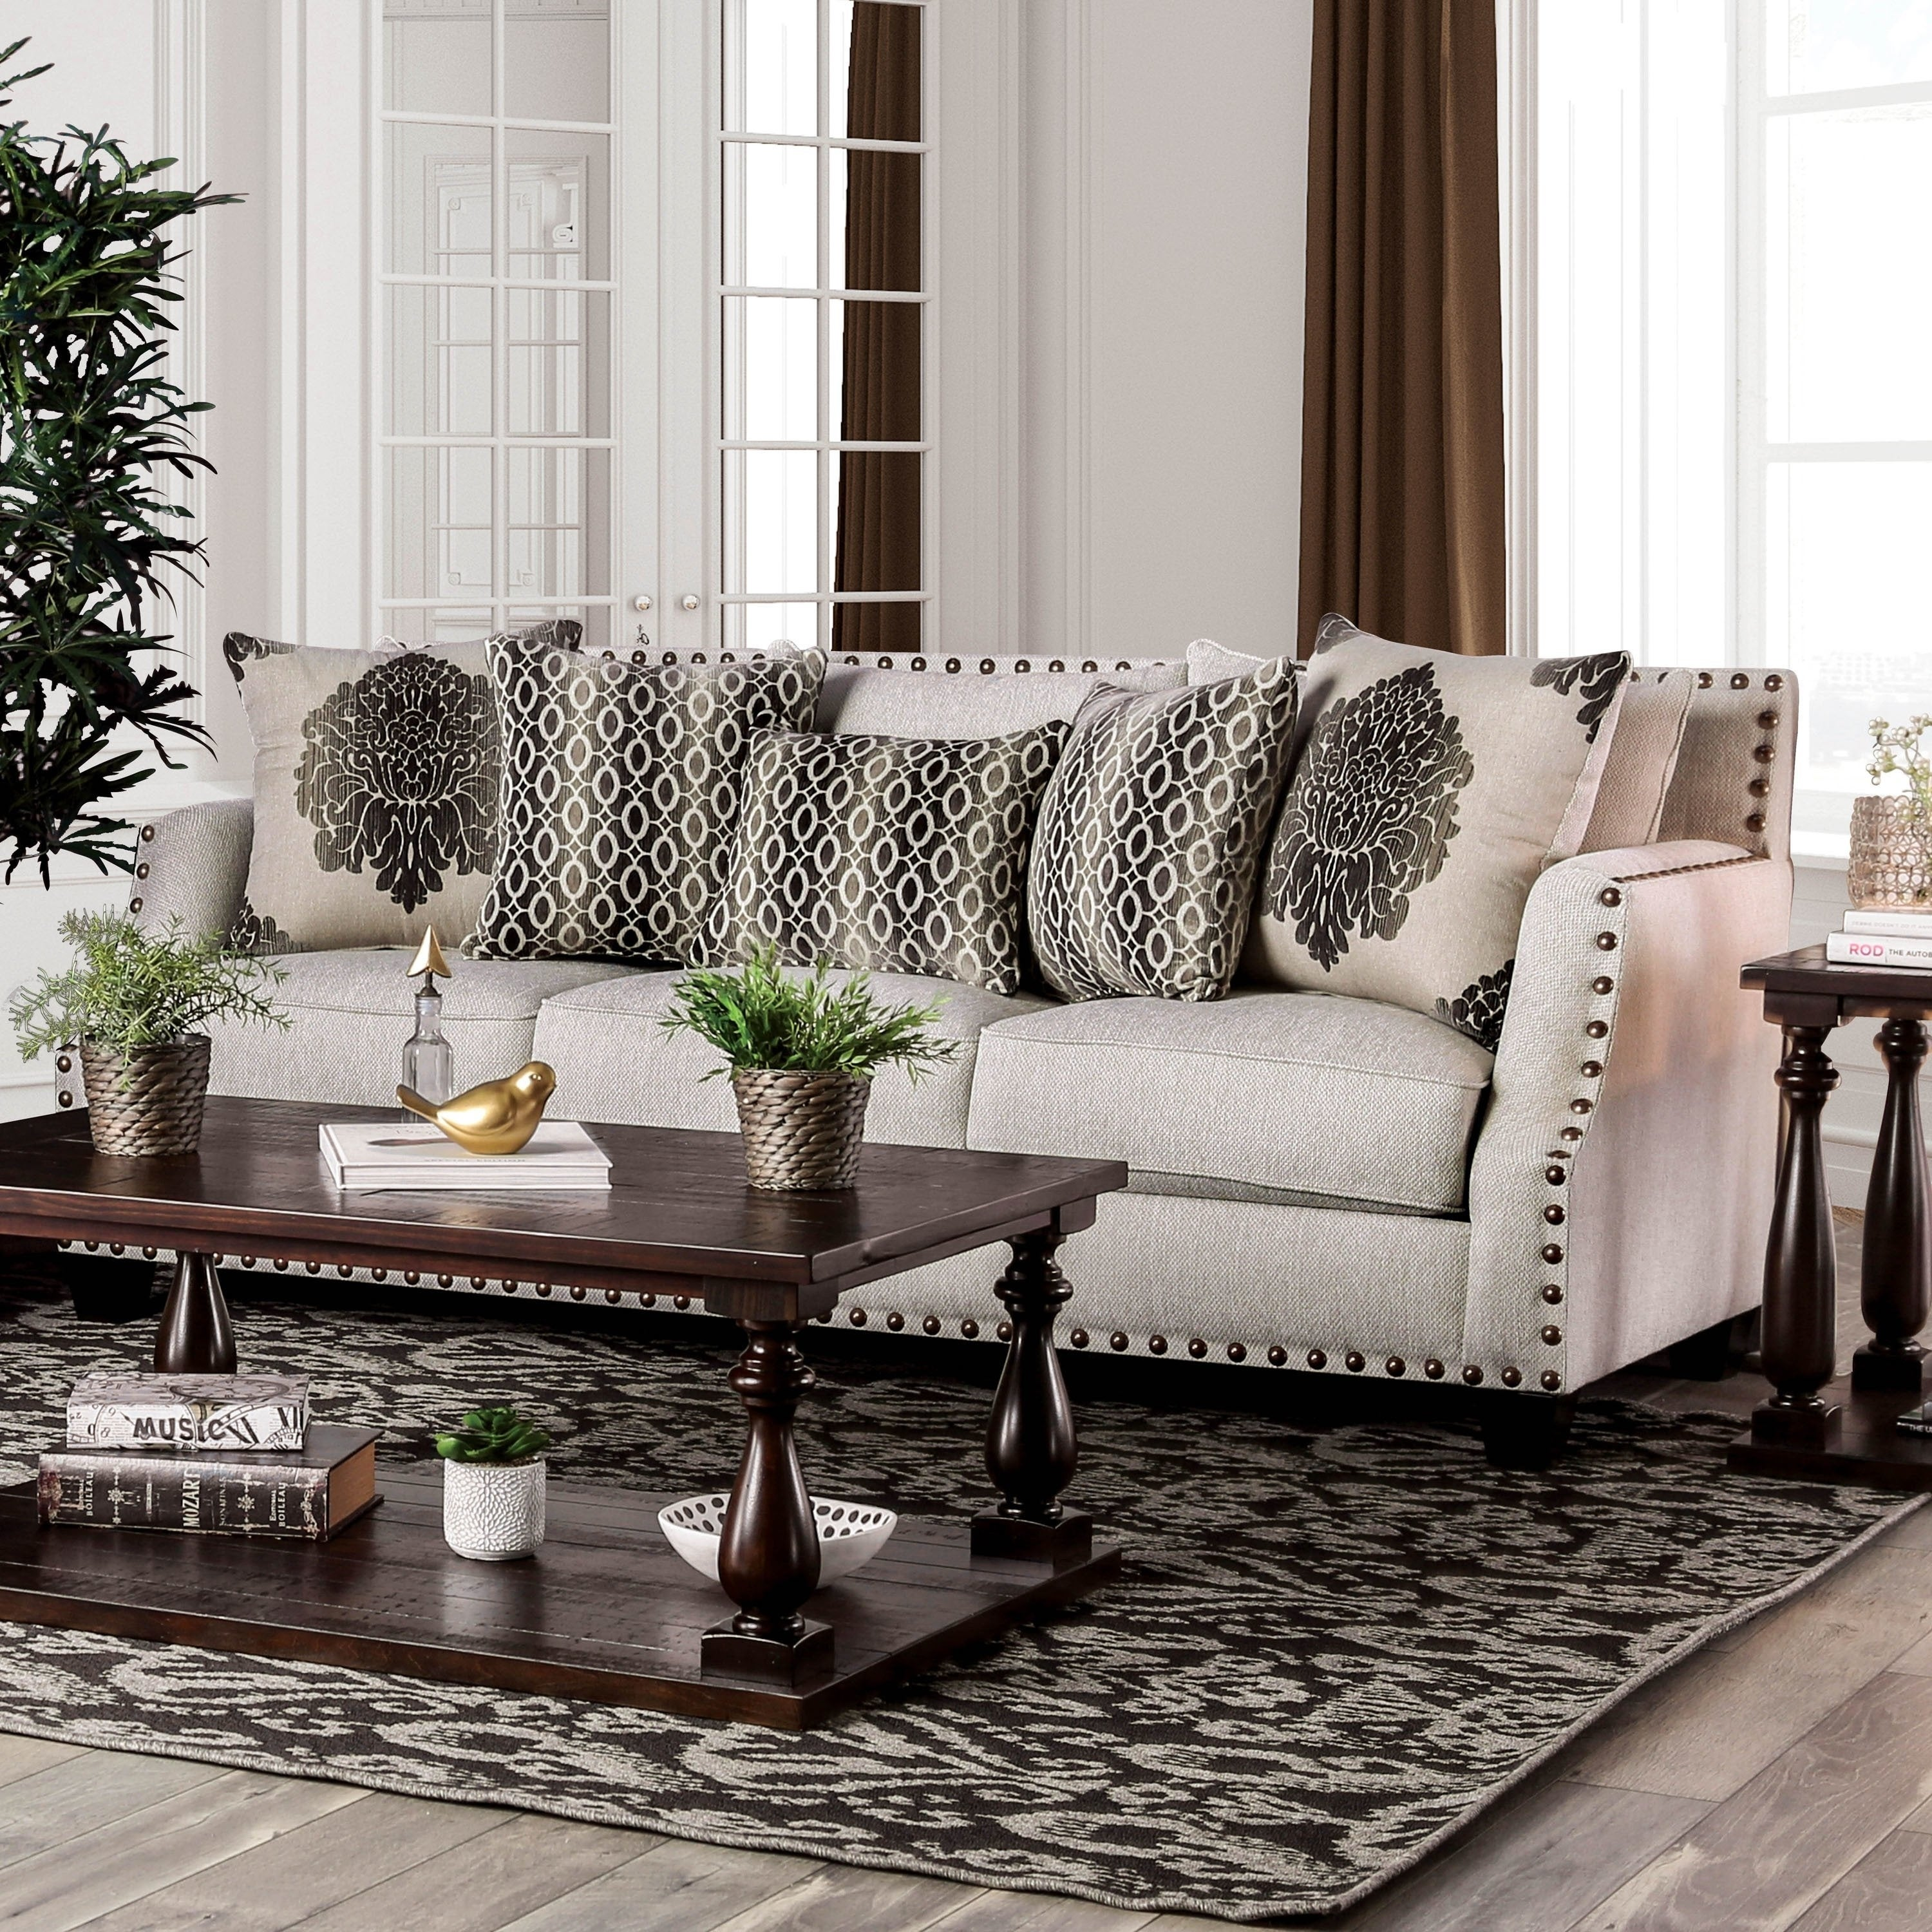 Furniture of America Zack Contemporary Chenille Upholstered Sofa